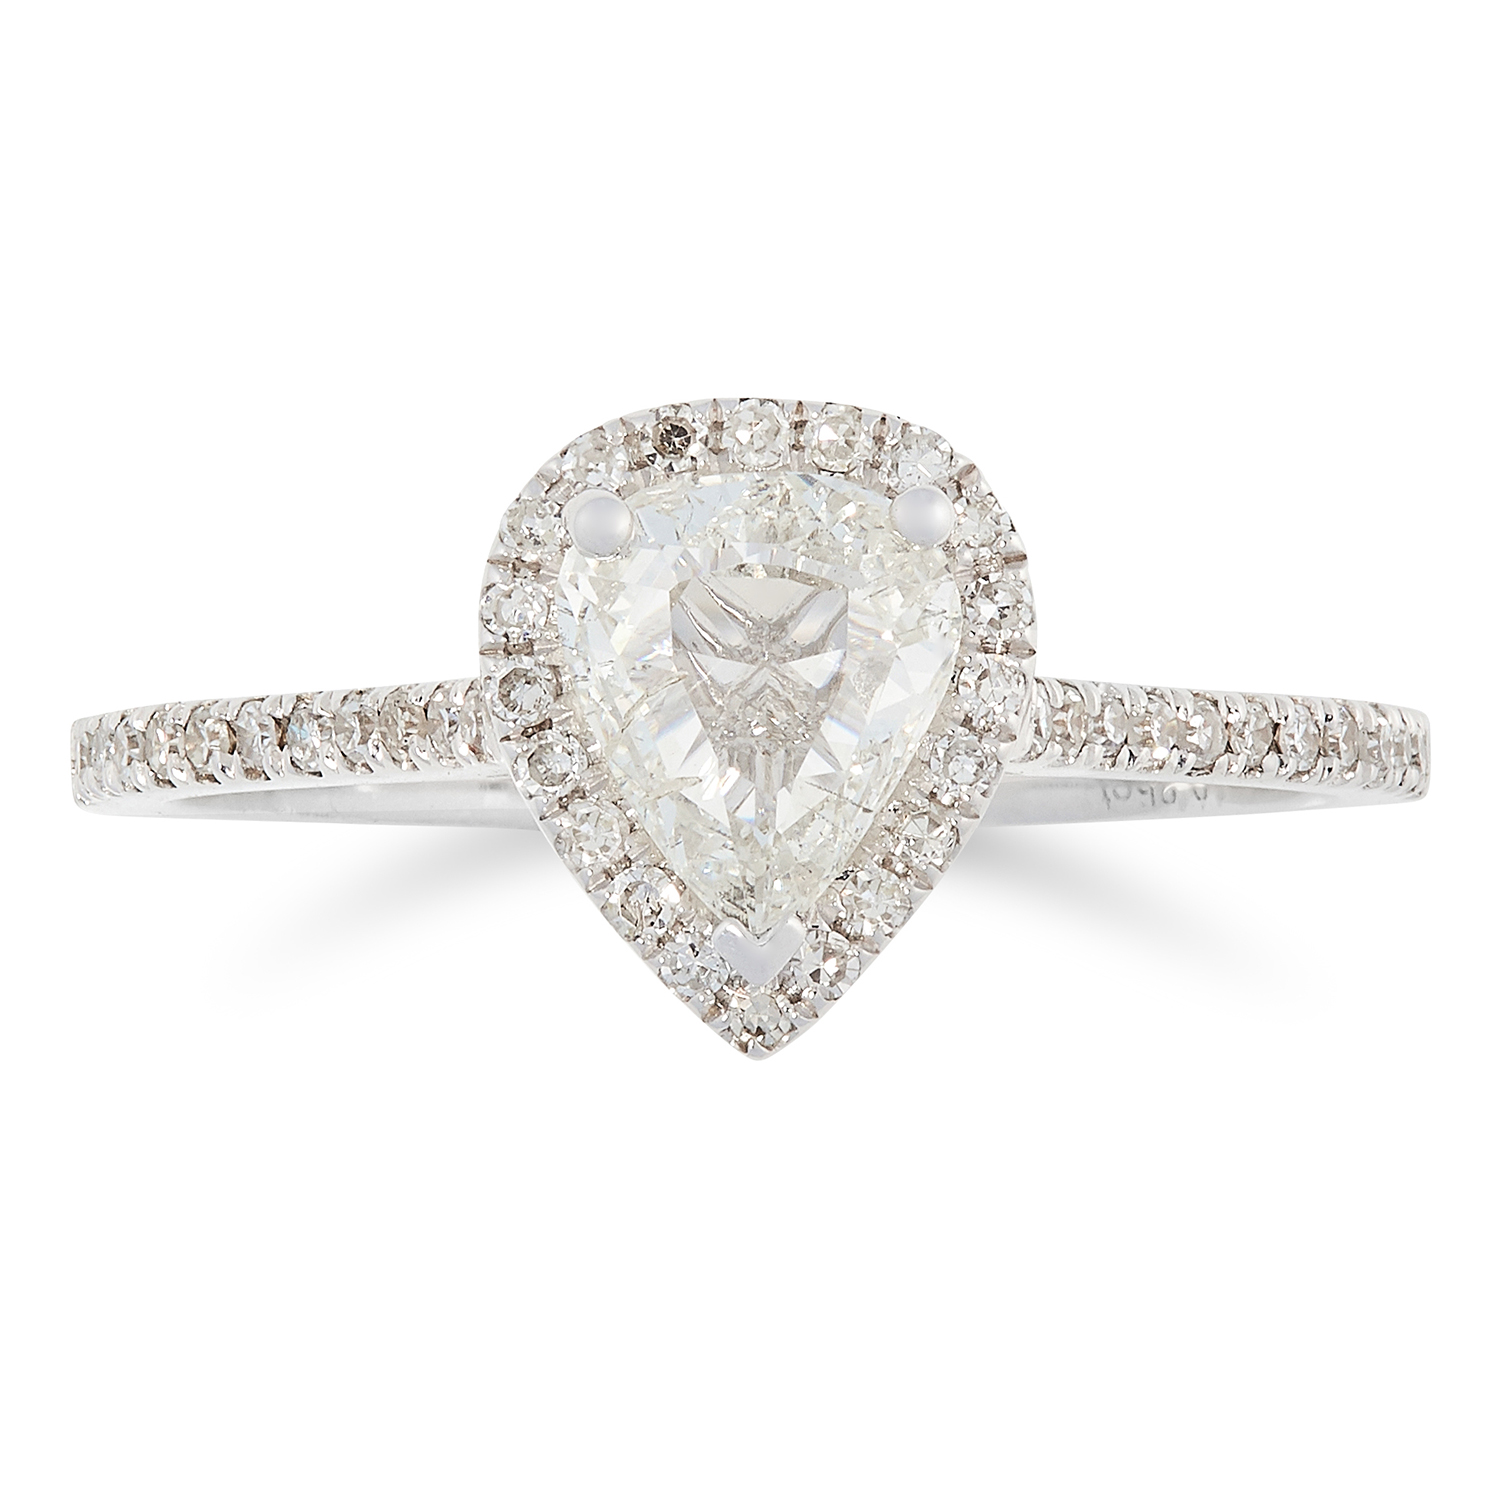 A DIAMOND SOLITAIRE RING, TRESOR PARIS set with a pear fancy cut diamond of 0.67 carats in a halo of